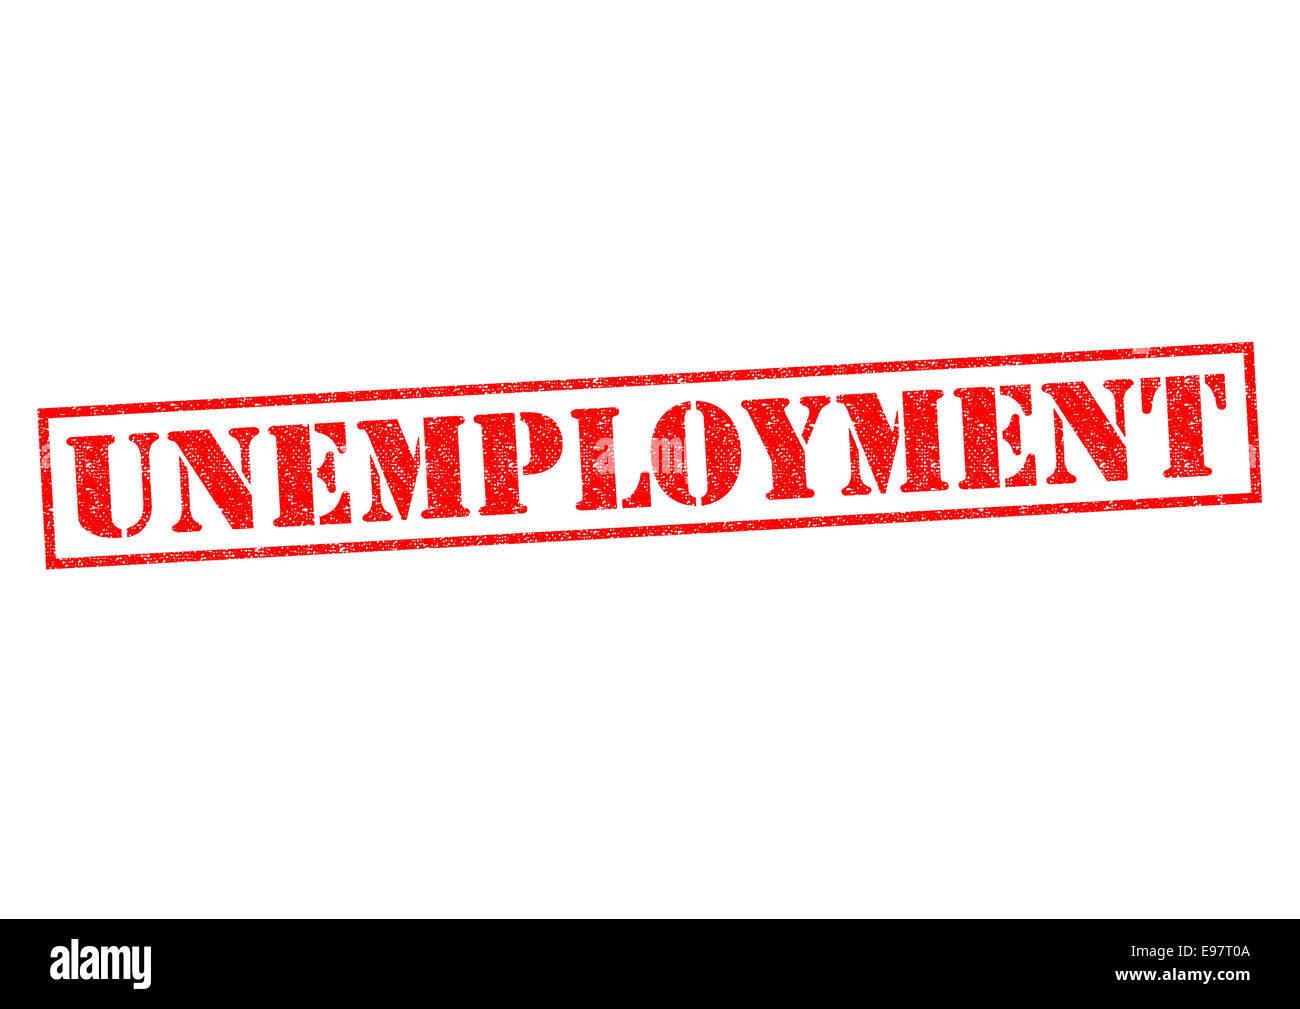 unemployment-red-rubber-stamp-over-a-white-background-E97T0A Jobcentre Plus Uk Application Form on ag application form, india application form, portugal application form, thailand application form, belgium application form, israel application form, usa application form, italy application form, france application form, germany application form, um application form, czech republic application form, jordan application form, cat application form, ghana application form, hm application form, sweden application form, new zealand application form, id application form,